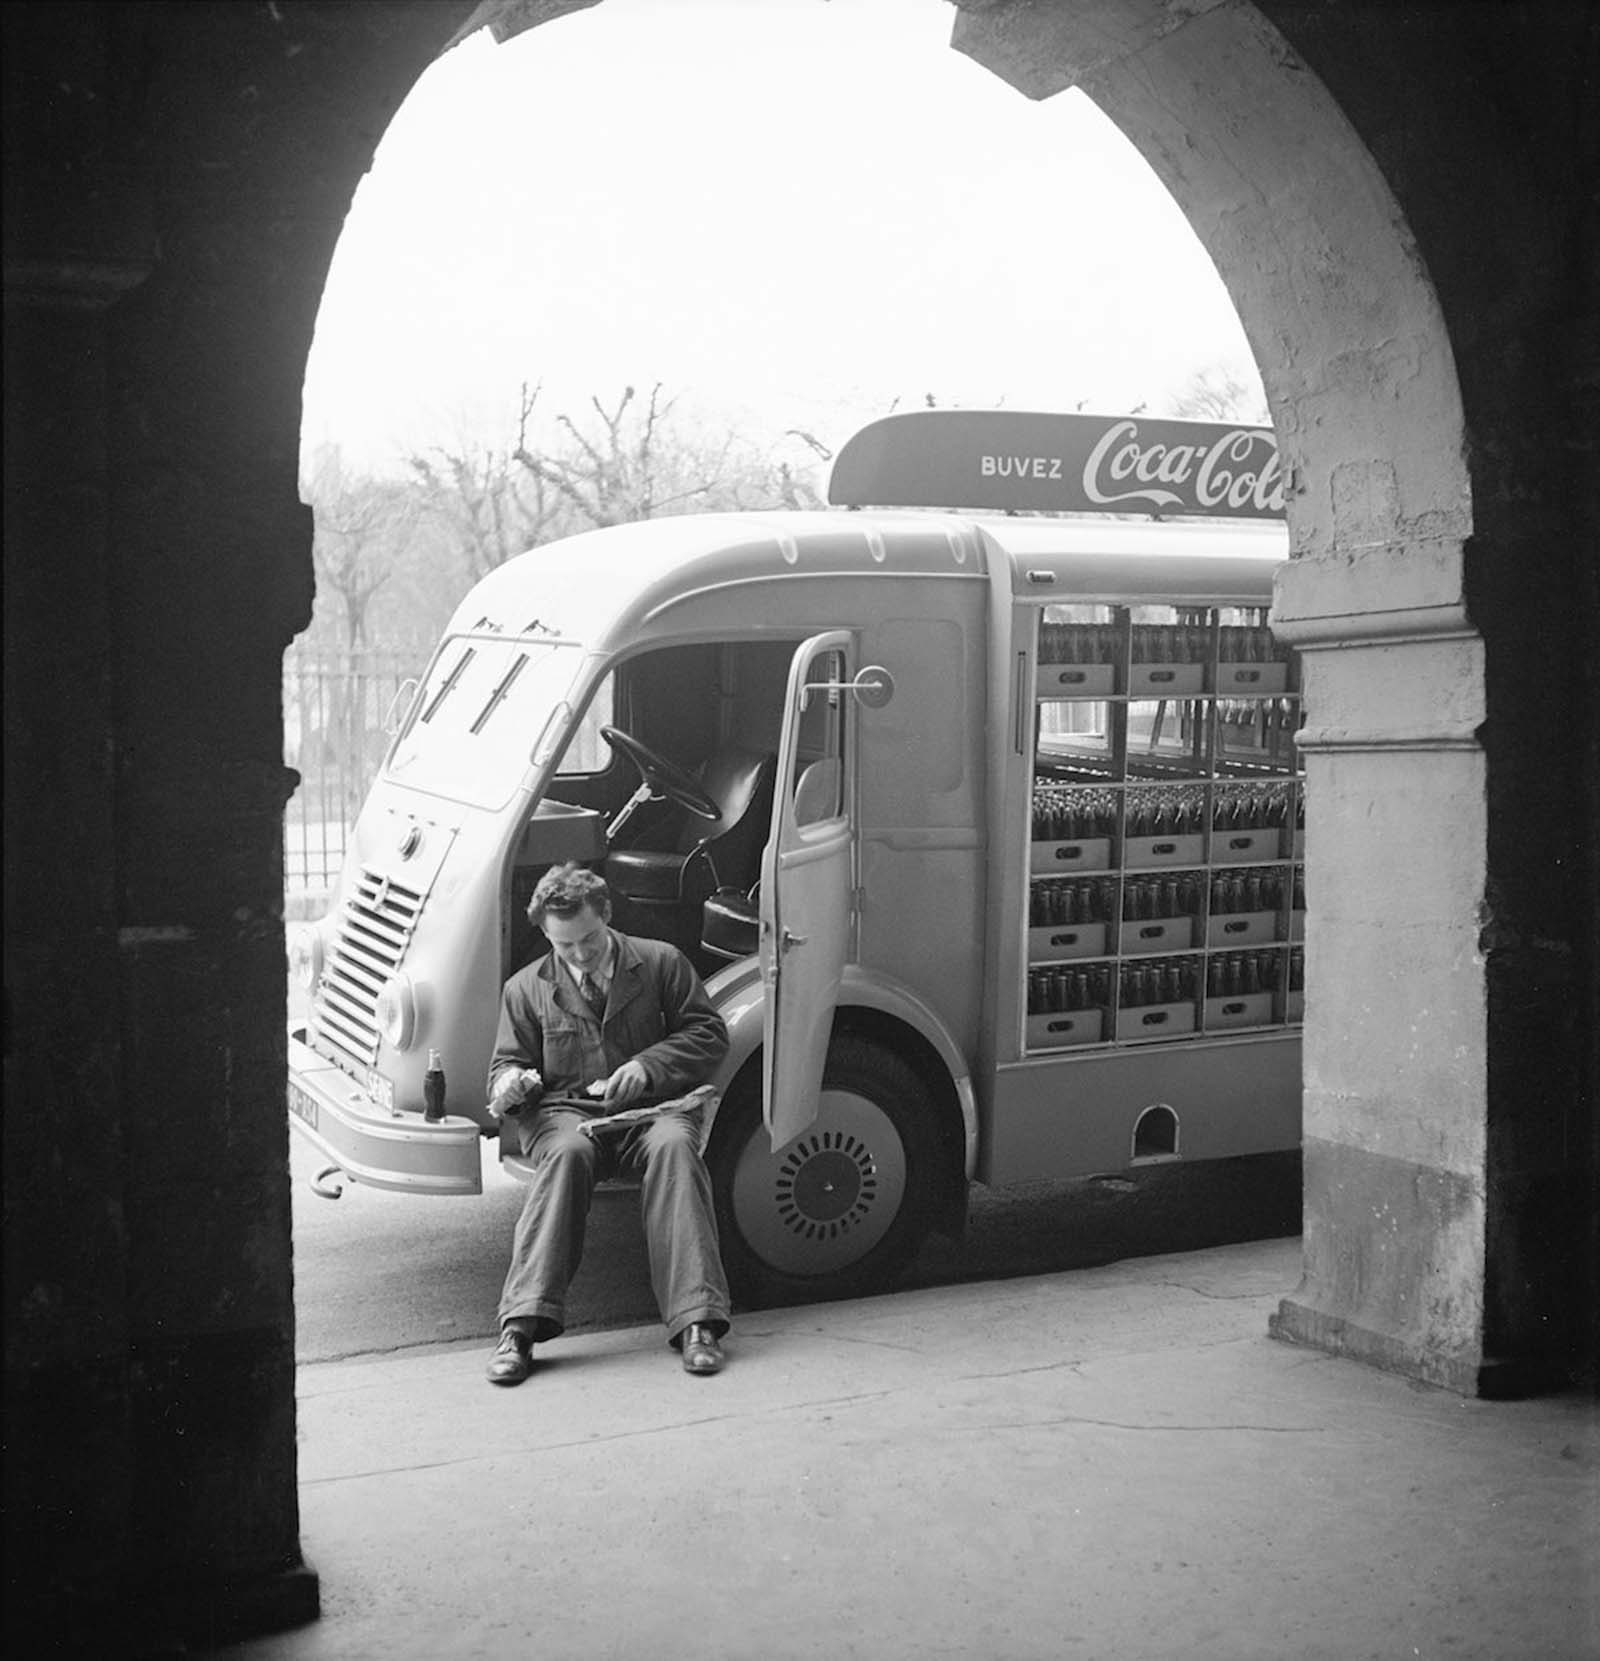 A Coca-Cola delivery driver sits in the open door of his truck while on a break, in France.